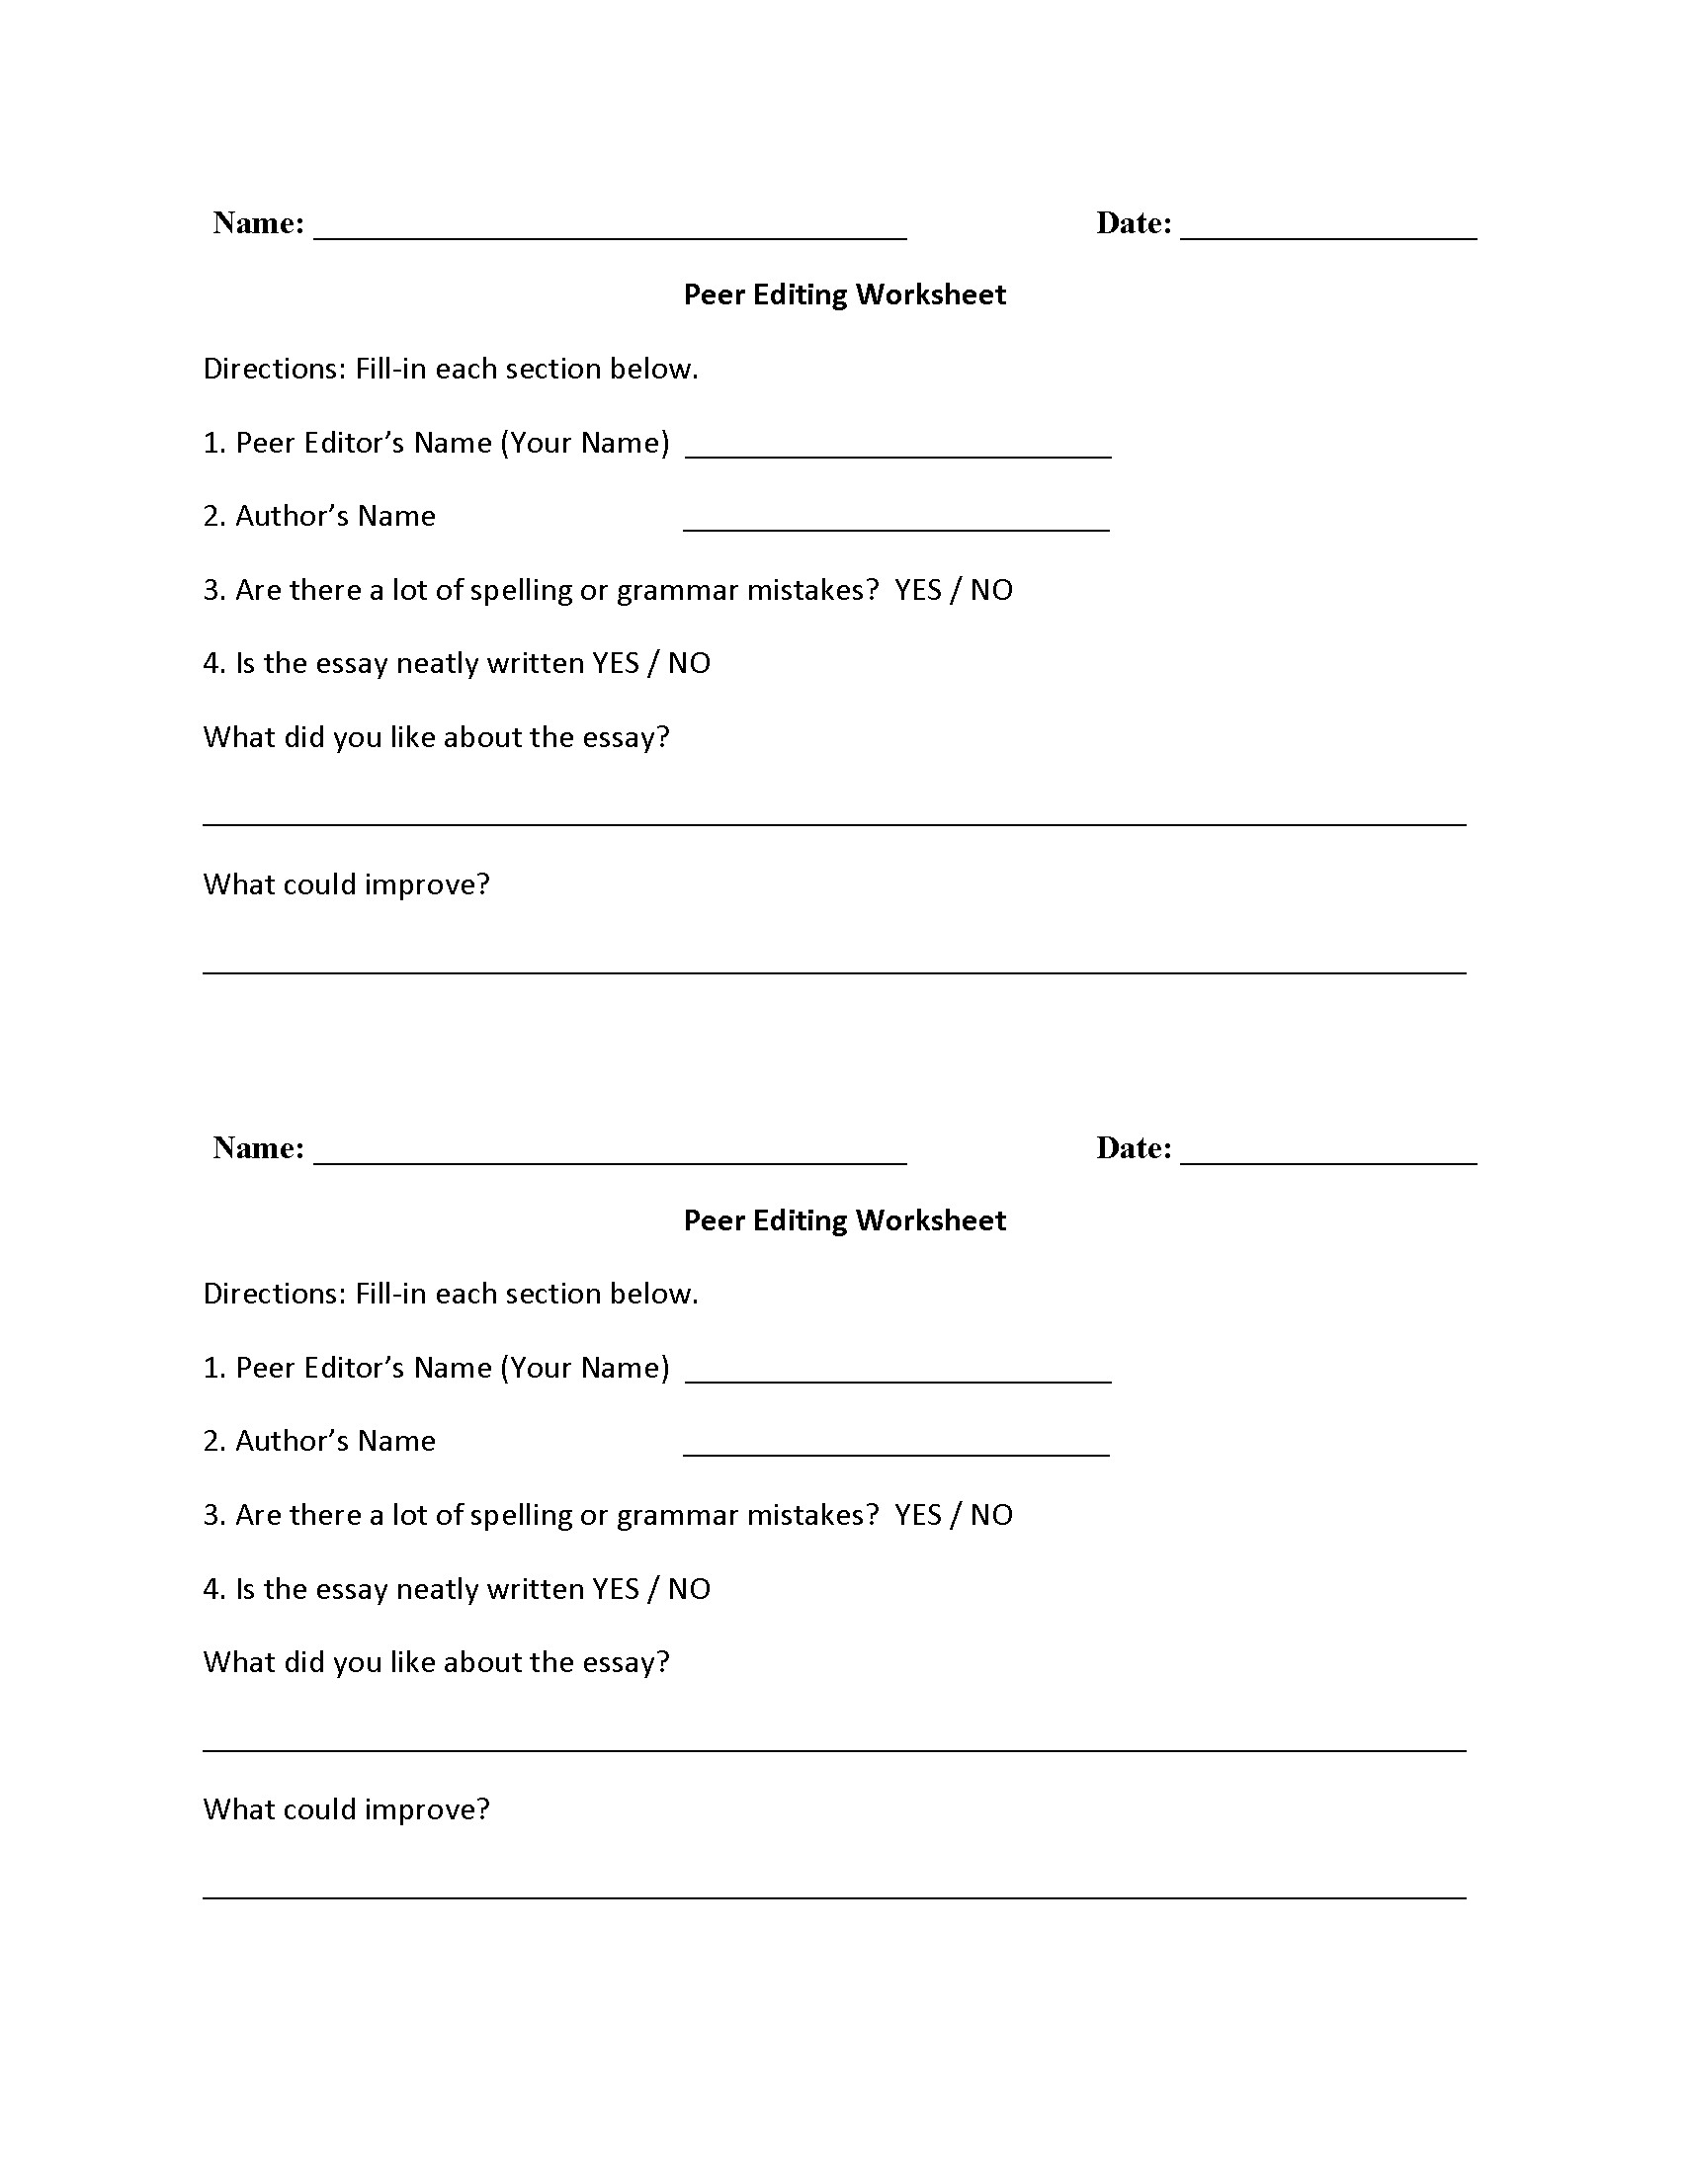 Peer Editing Writing Worksheets